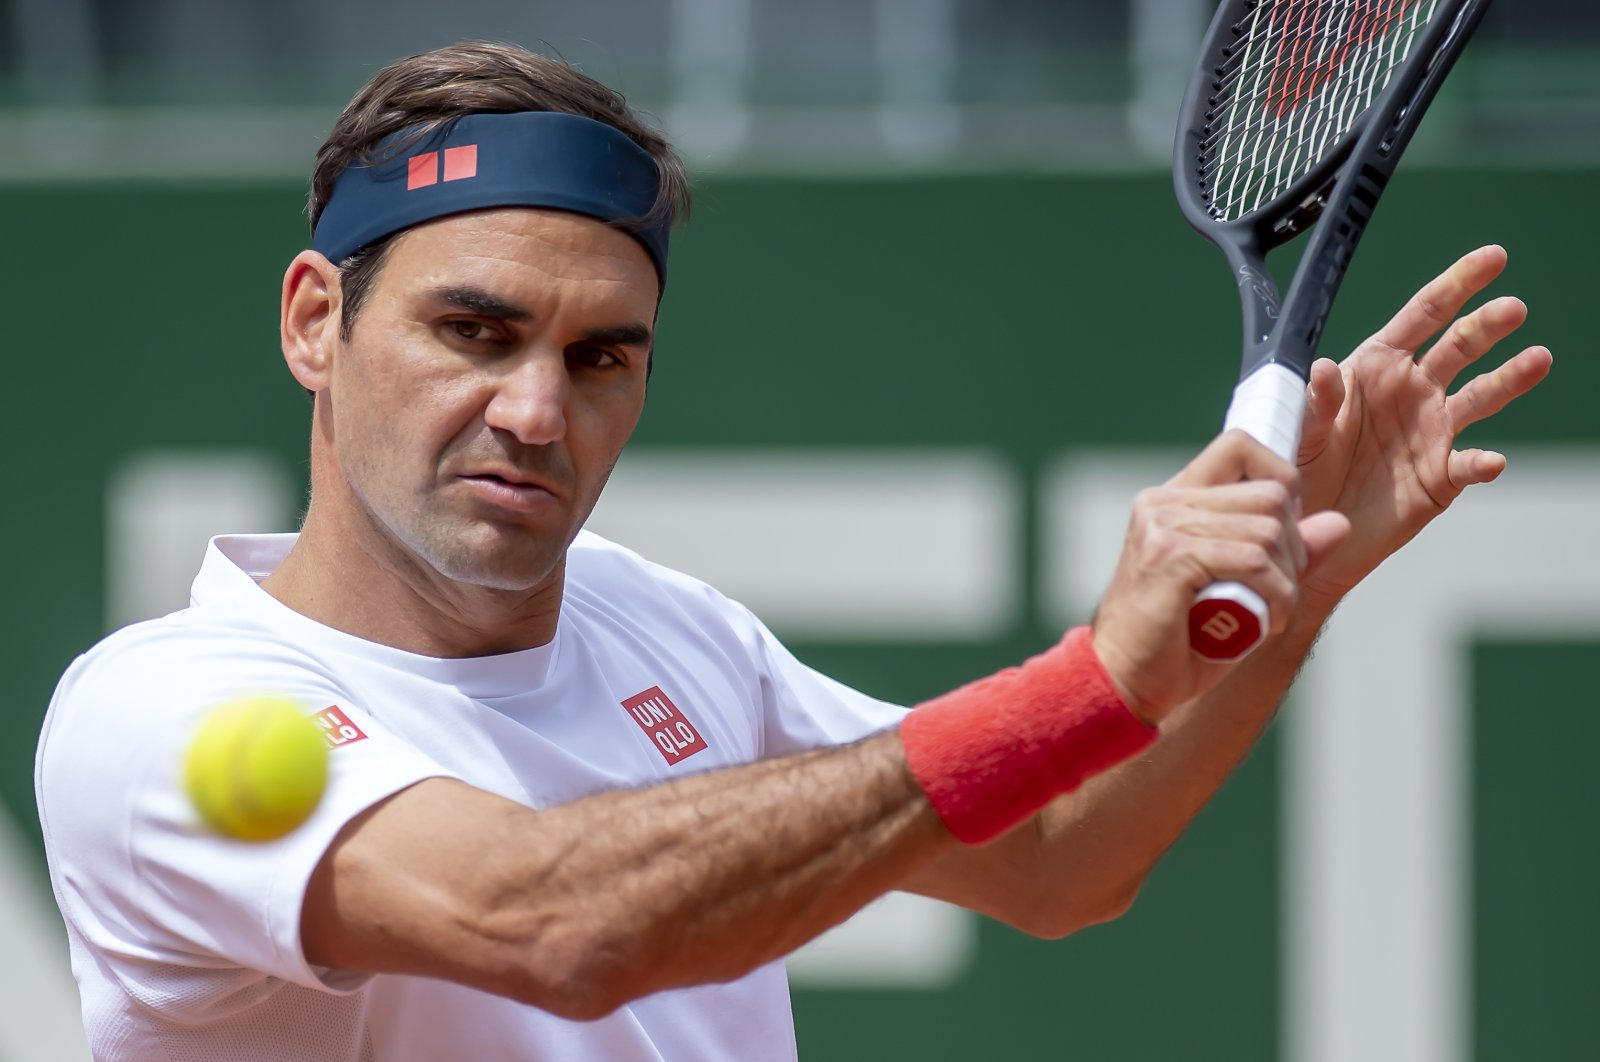 Switzerland's tennis player Roger Federer in action during a training session prior to the ATP 250 Tennis Geneva Open tournament, in Geneva, Switzerland, May 14, 2021. (AP Photo)